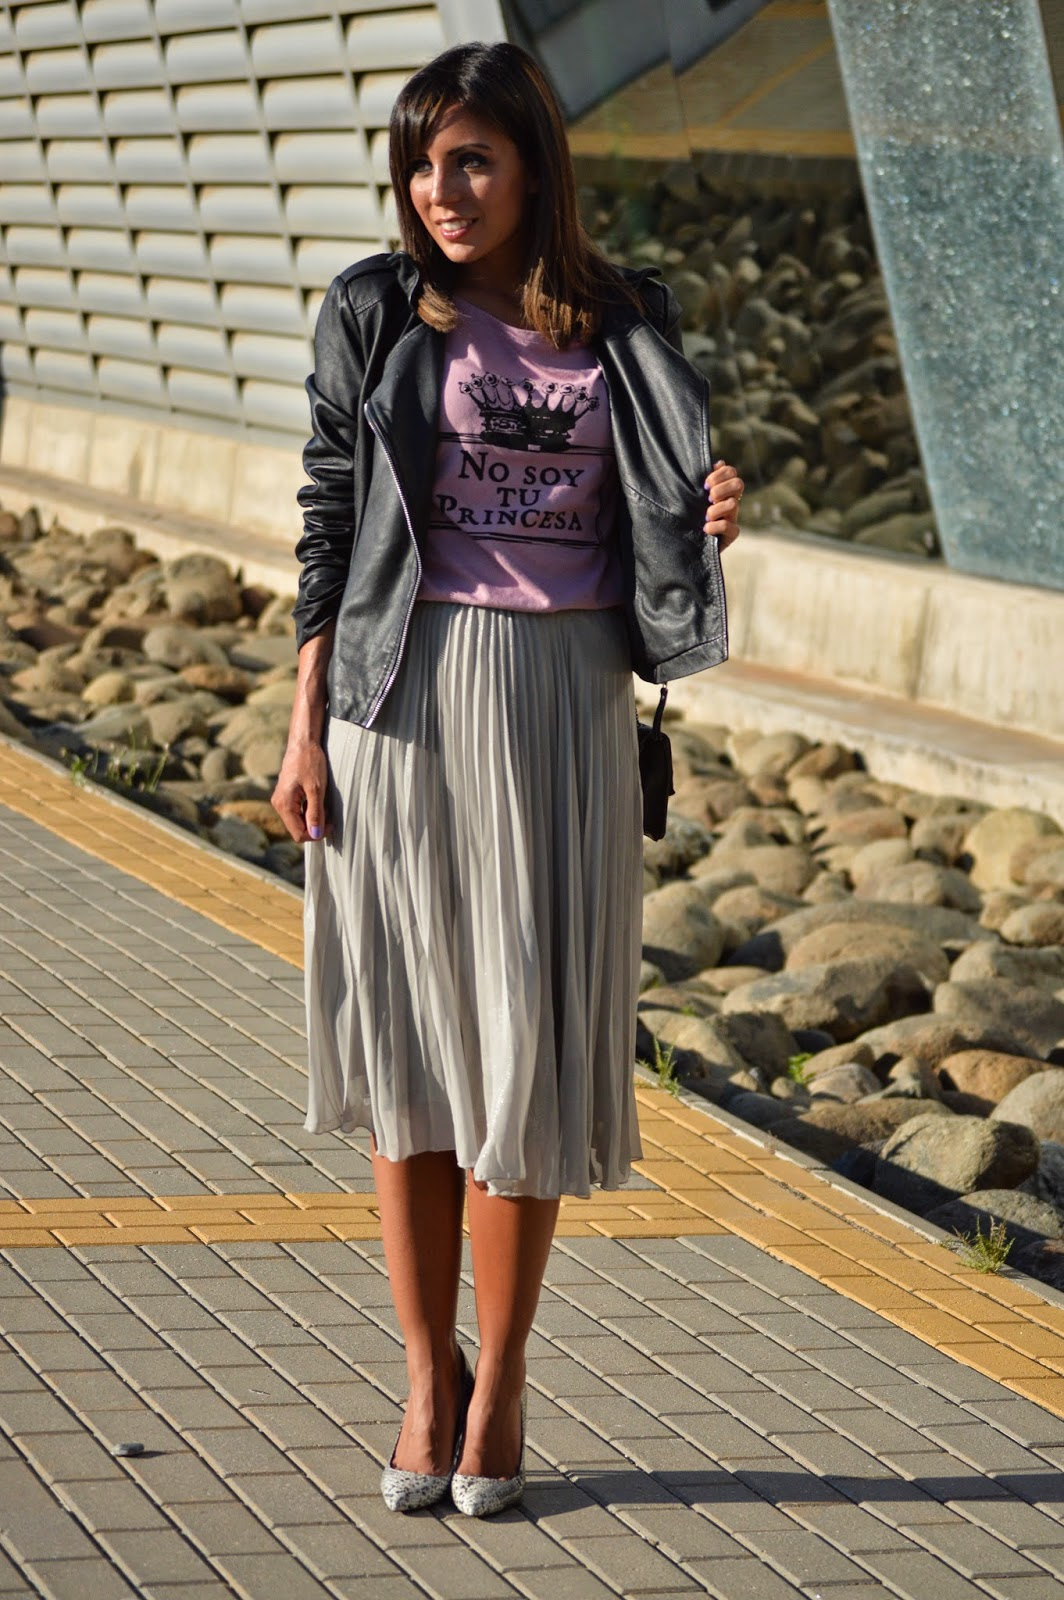 ootd street style style fashion fashion blogger malagueña blogger malagueña cristina style outfit look chic casual love me girl lovely mango spring swag desinger purse moda mood trend gorgeous styles stylish midi